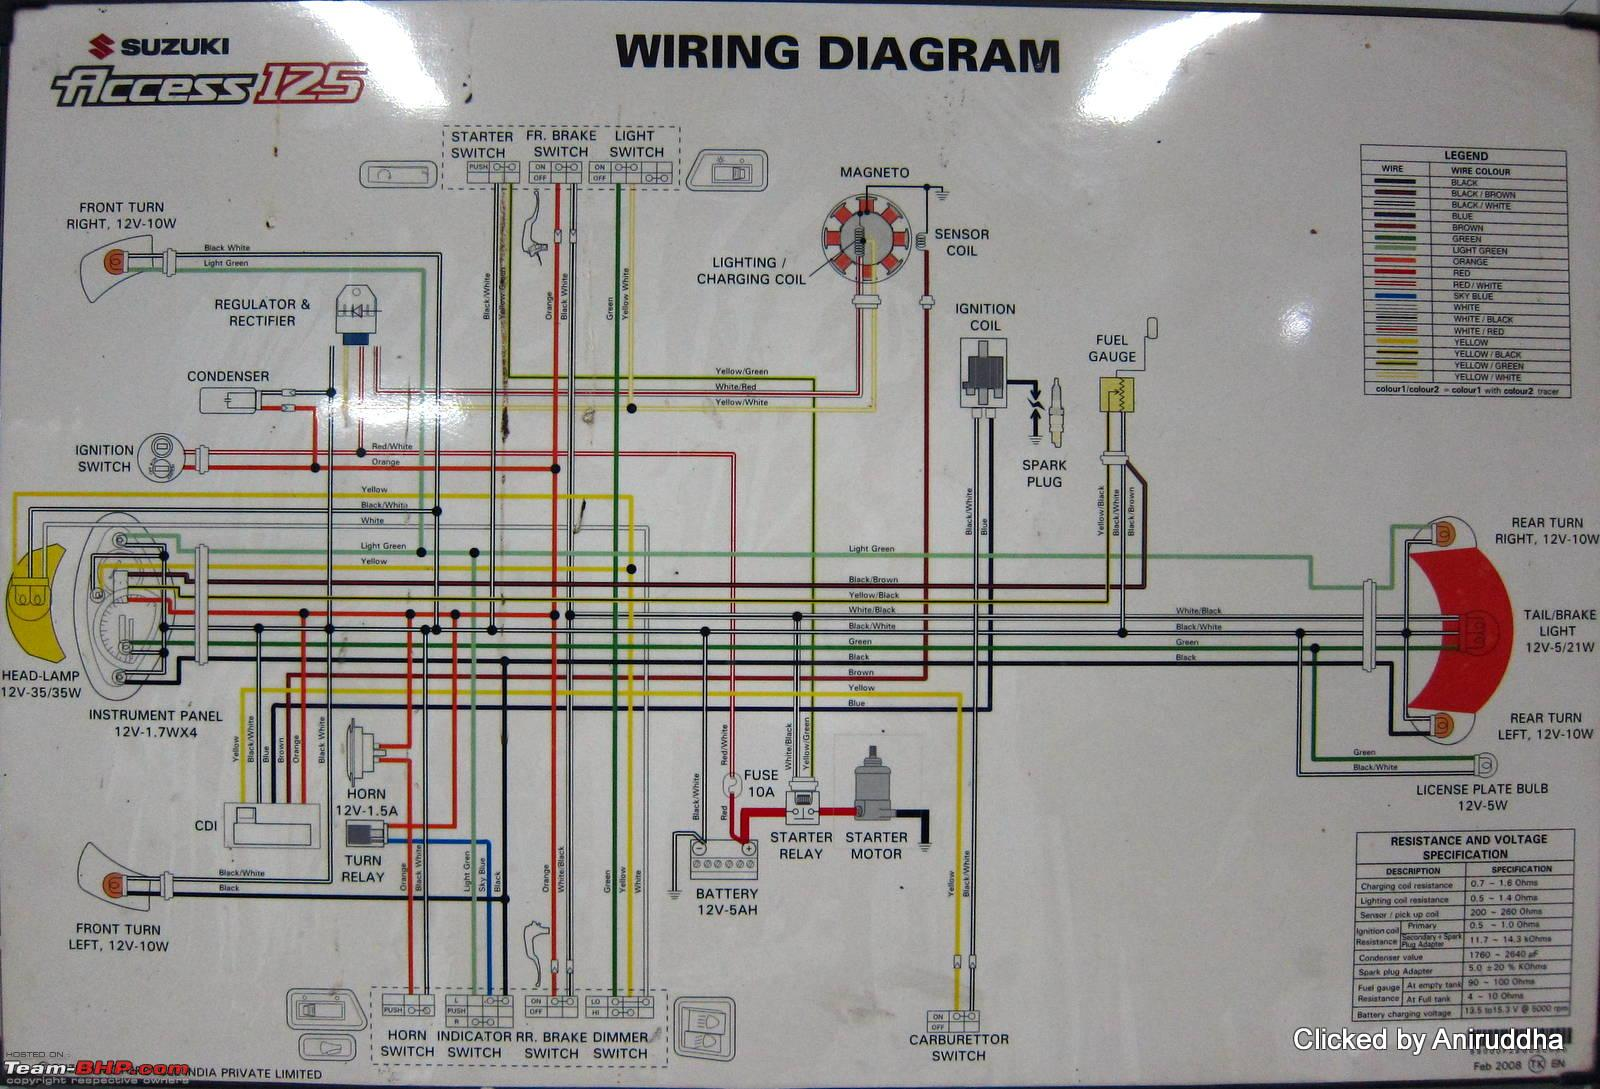 887403d1329132985 circuit diagrams indian motorcycles scooters img_0719 circuit diagrams of indian motorcycles and scooters team bhp axxess wiring diagram at reclaimingppi.co